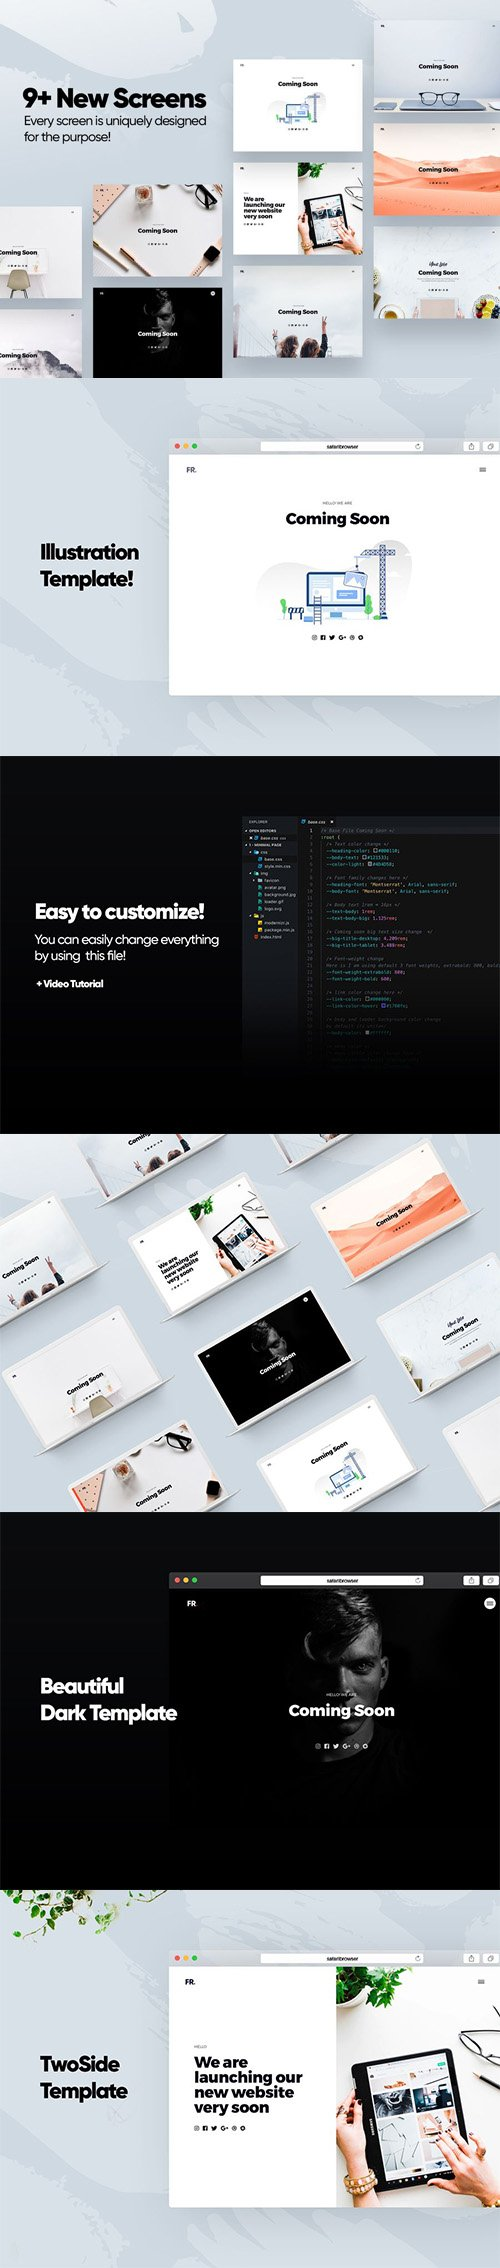 Coming Soon Template v3 - 9+ New version Responsive design